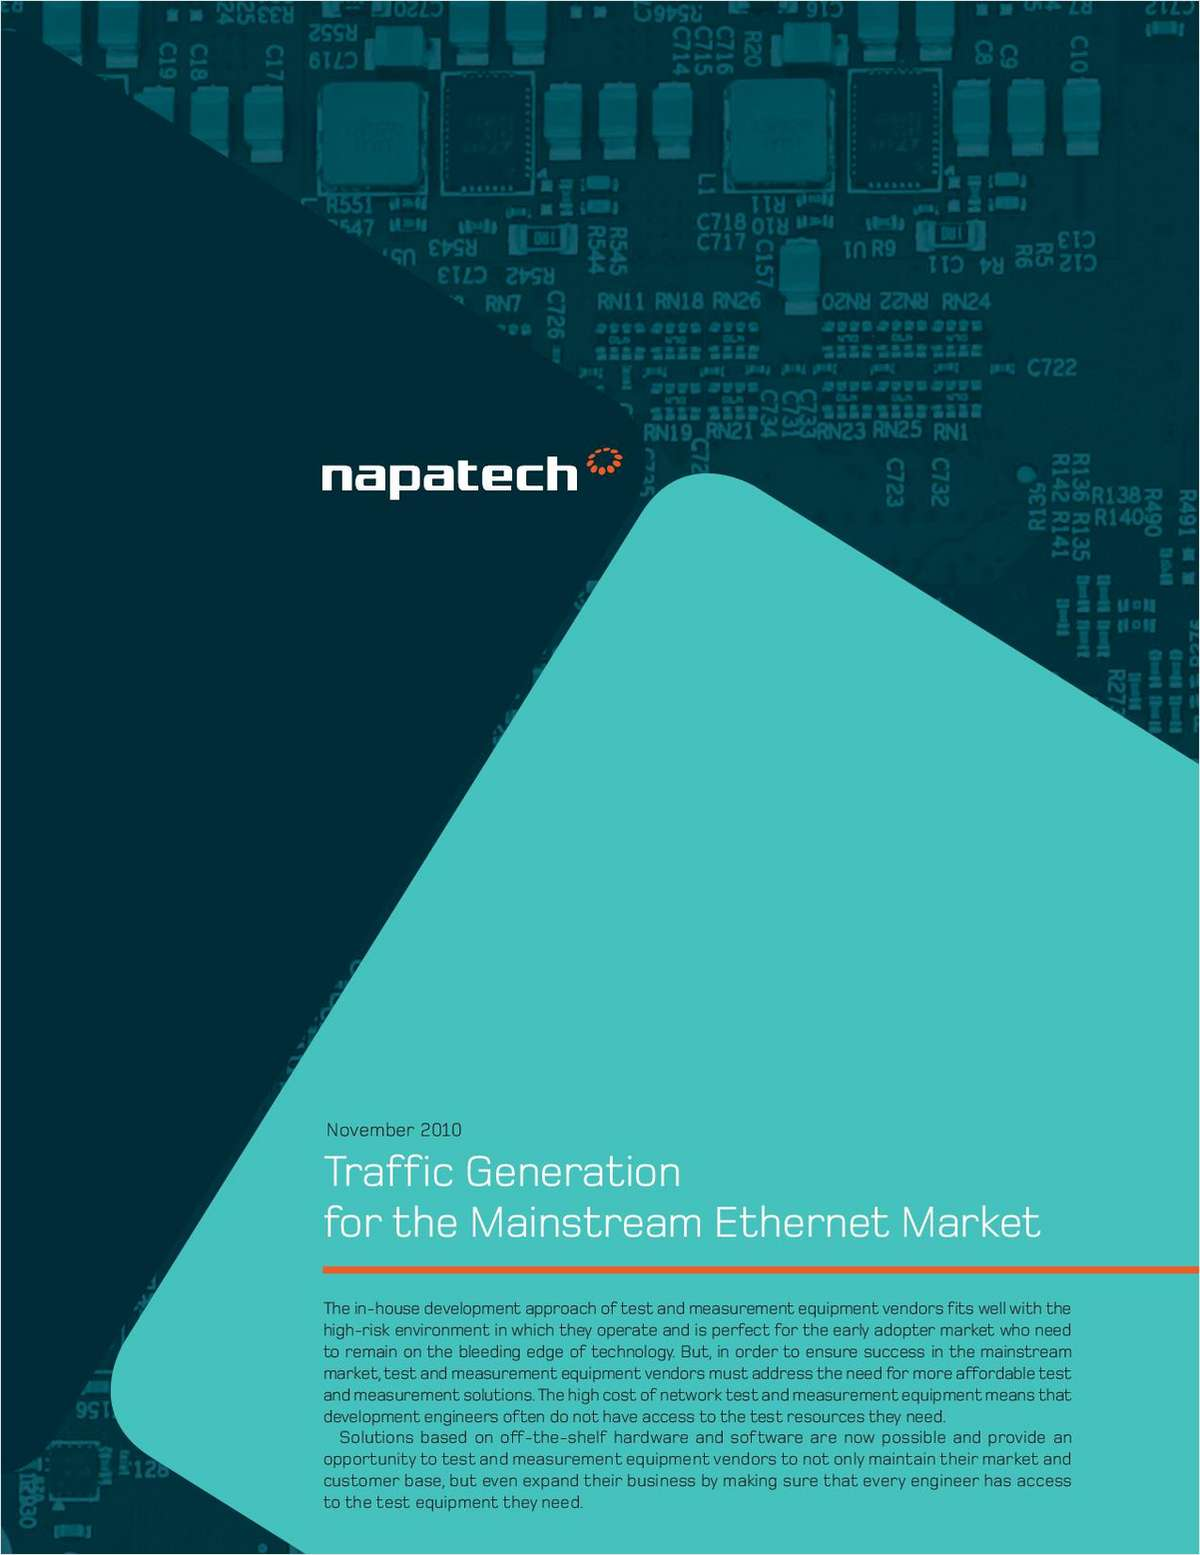 Traffic Generation for the Mainstream Ethernet Market for Test and Measurement Equipment Vendors